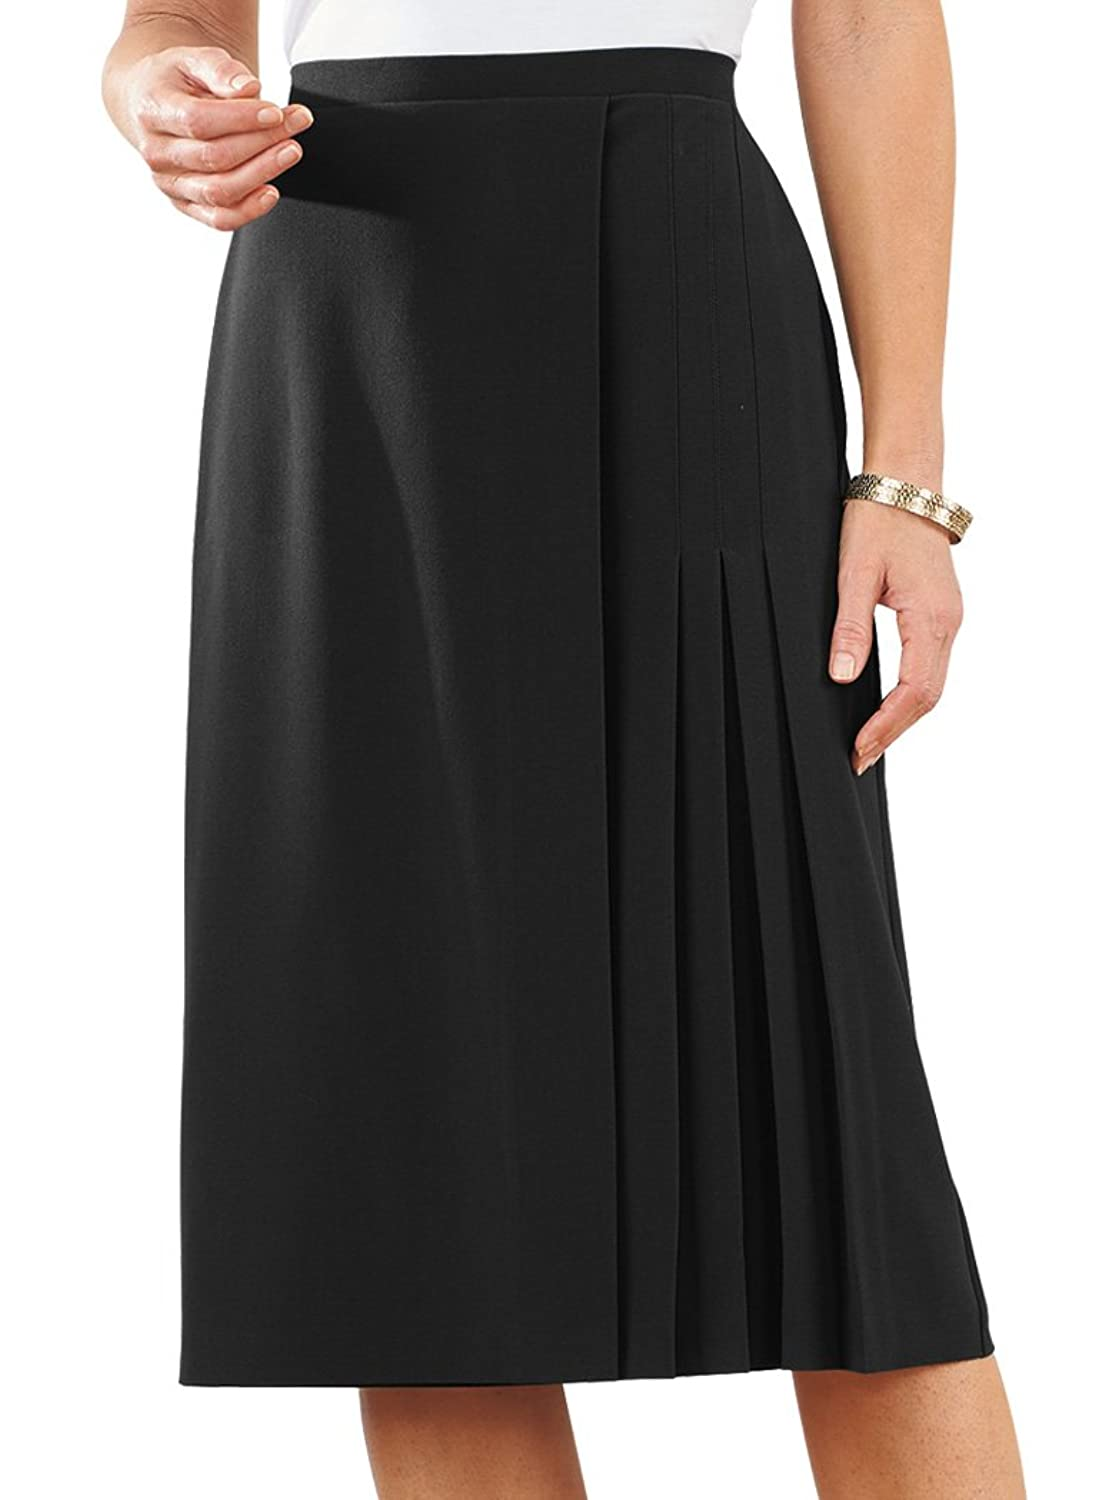 1920s Skirts, Gatsby Skirts, Vintage Pleated Skirts Faux Wrap Skirt $31.99 AT vintagedancer.com